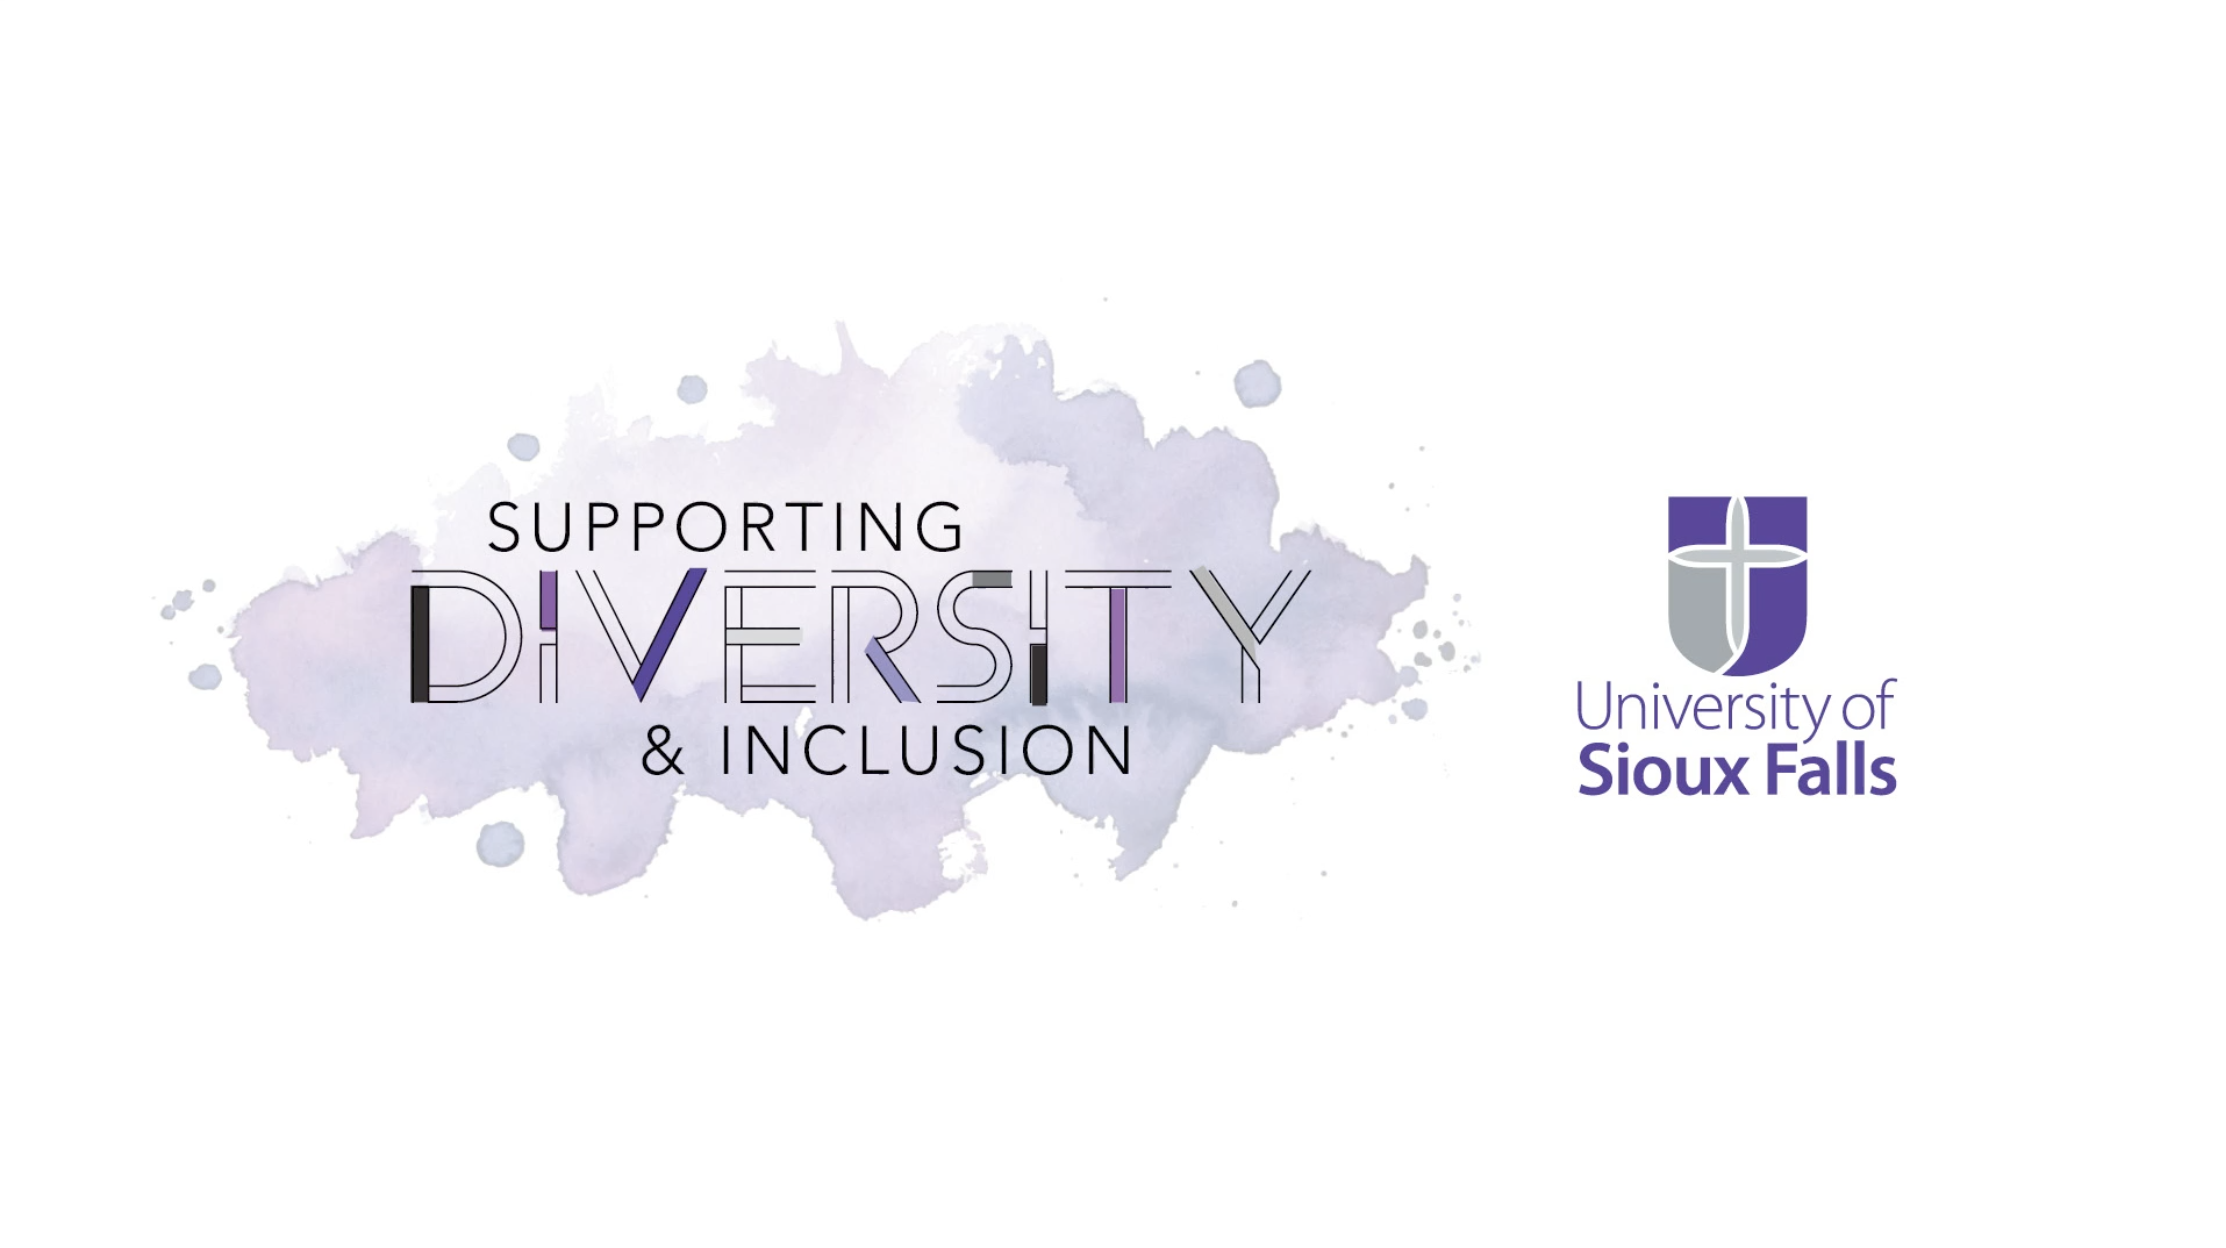 supporting Diversity and Inclusion University of Sioux Falls